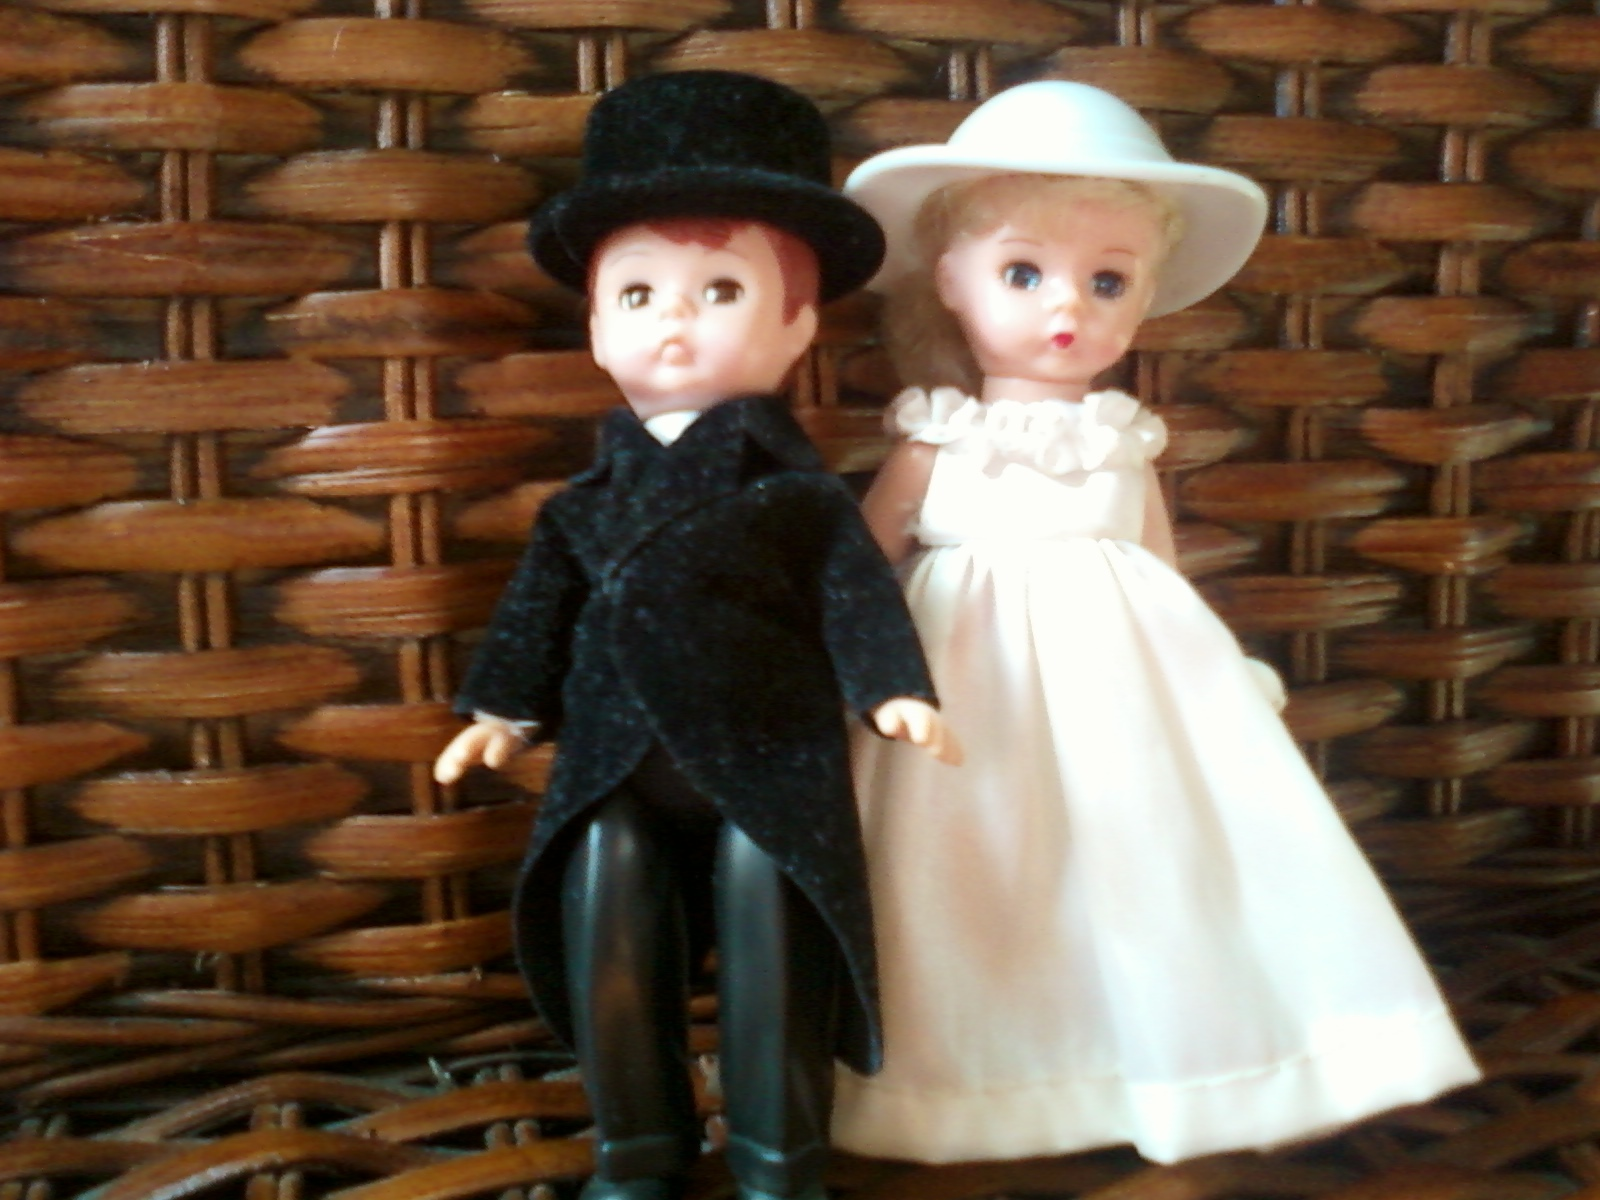 Ceremony, DIY, Flowers & Decor, Cakes, yellow, black, cake, Vintage, Vintage Wedding Cakes, Bride, Groom, Cutting, Children, Toppers, Retro, Toys, Doll, Collectible, Mcdonalds